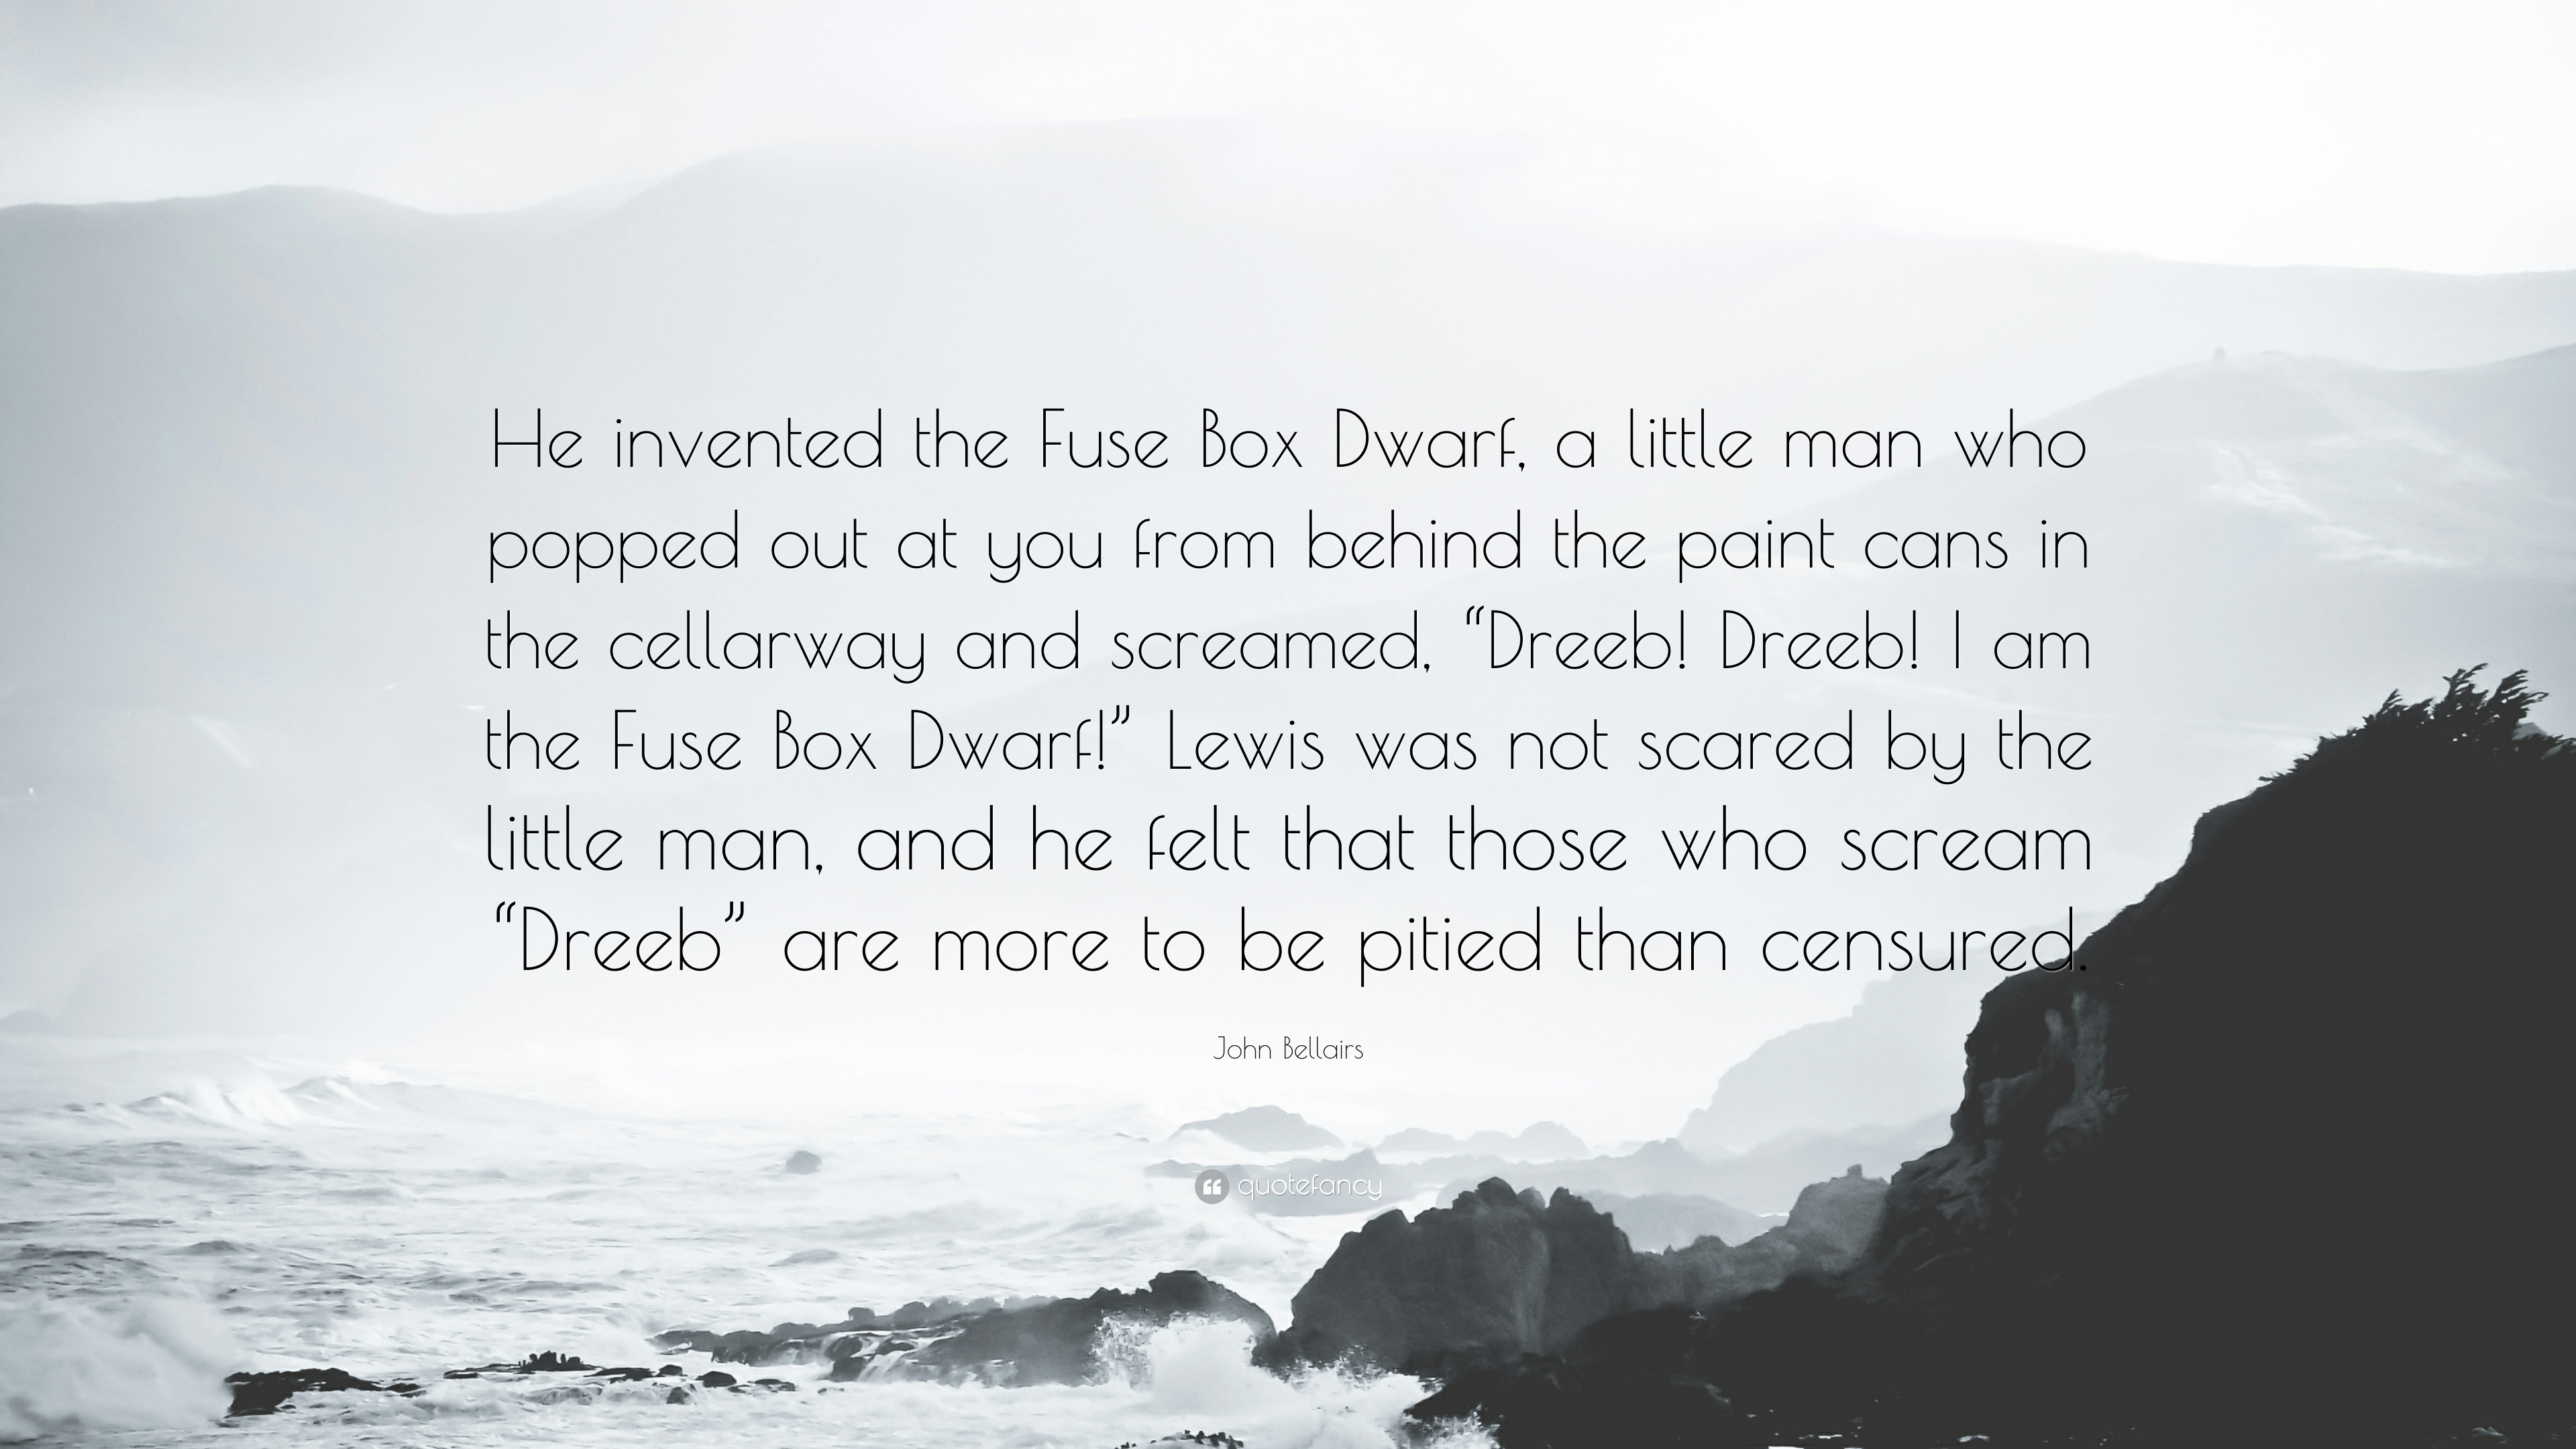 john bellairs quote ldquo he invented the fuse box dwarf a little man john bellairs quote ldquohe invented the fuse box dwarf a little man who